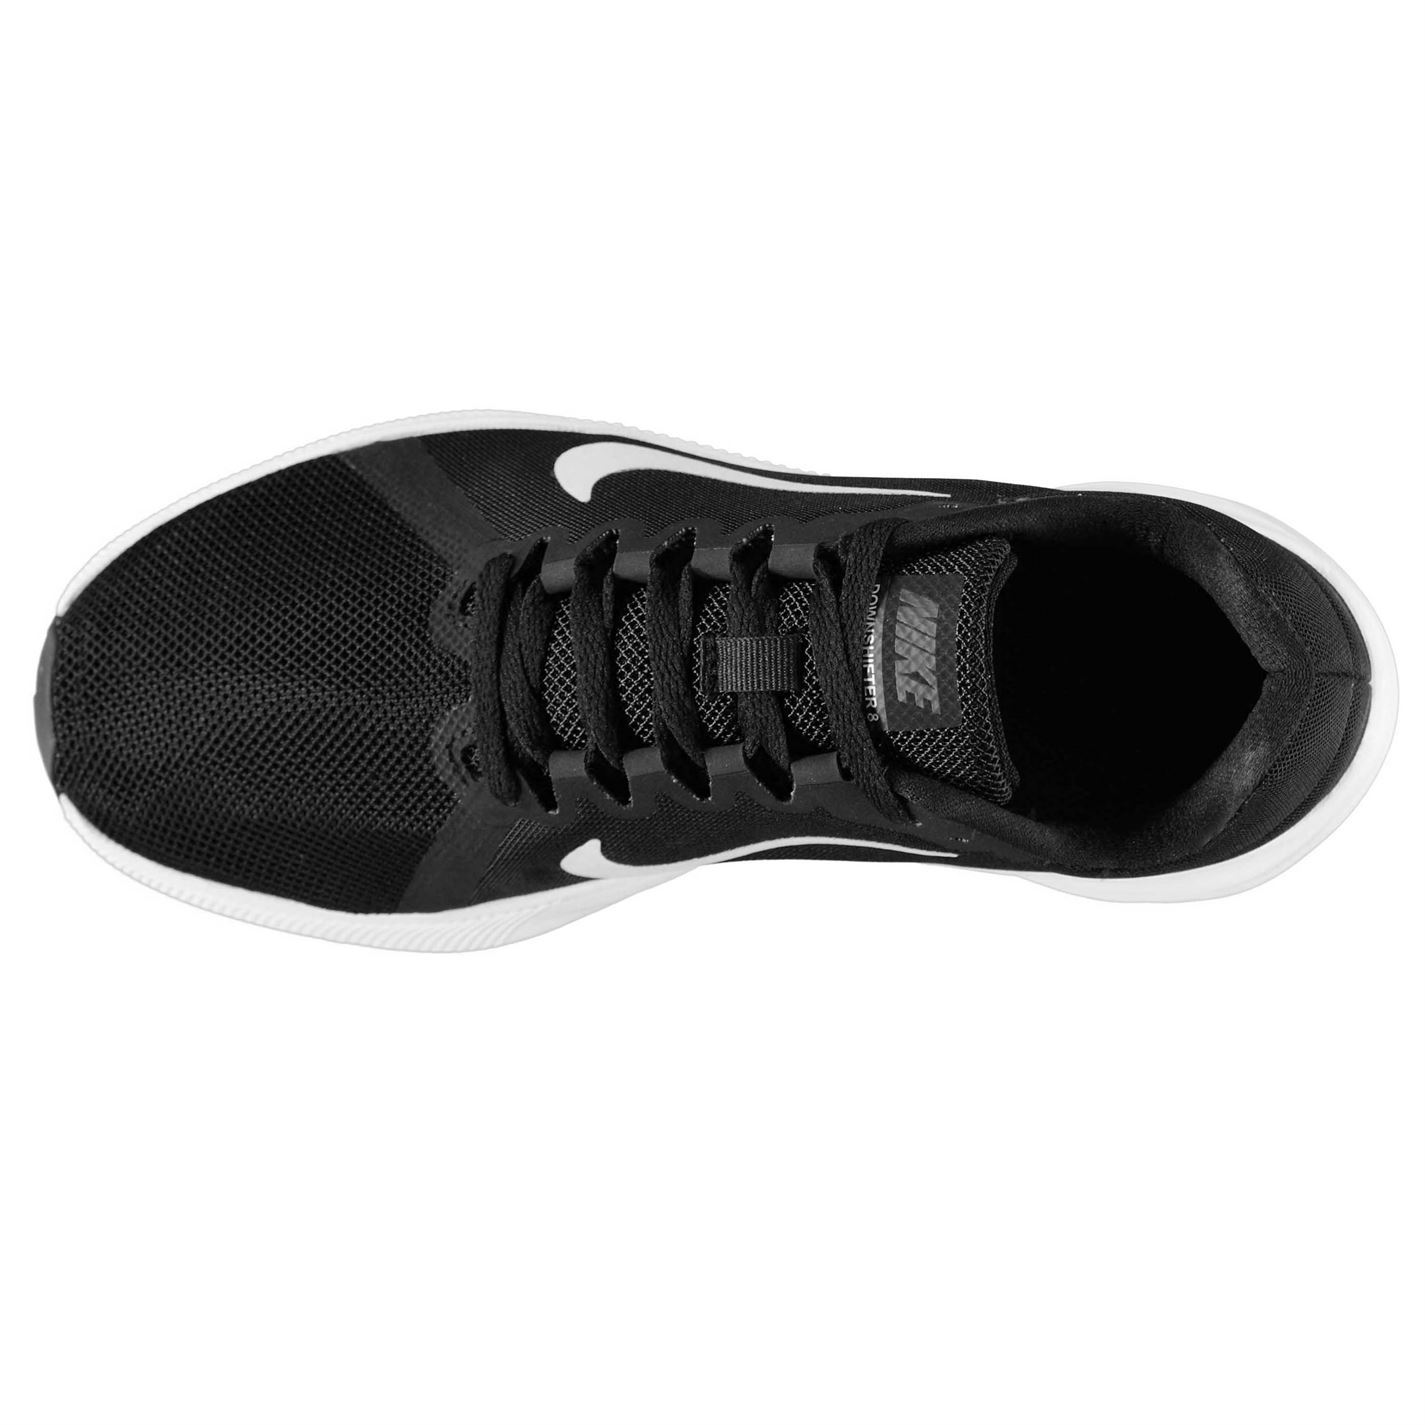 best sneakers 9a4e6 4181b ... Nike Downshifter 8 Running Shoes Womens Black White Jogging Trainers  Sneakers